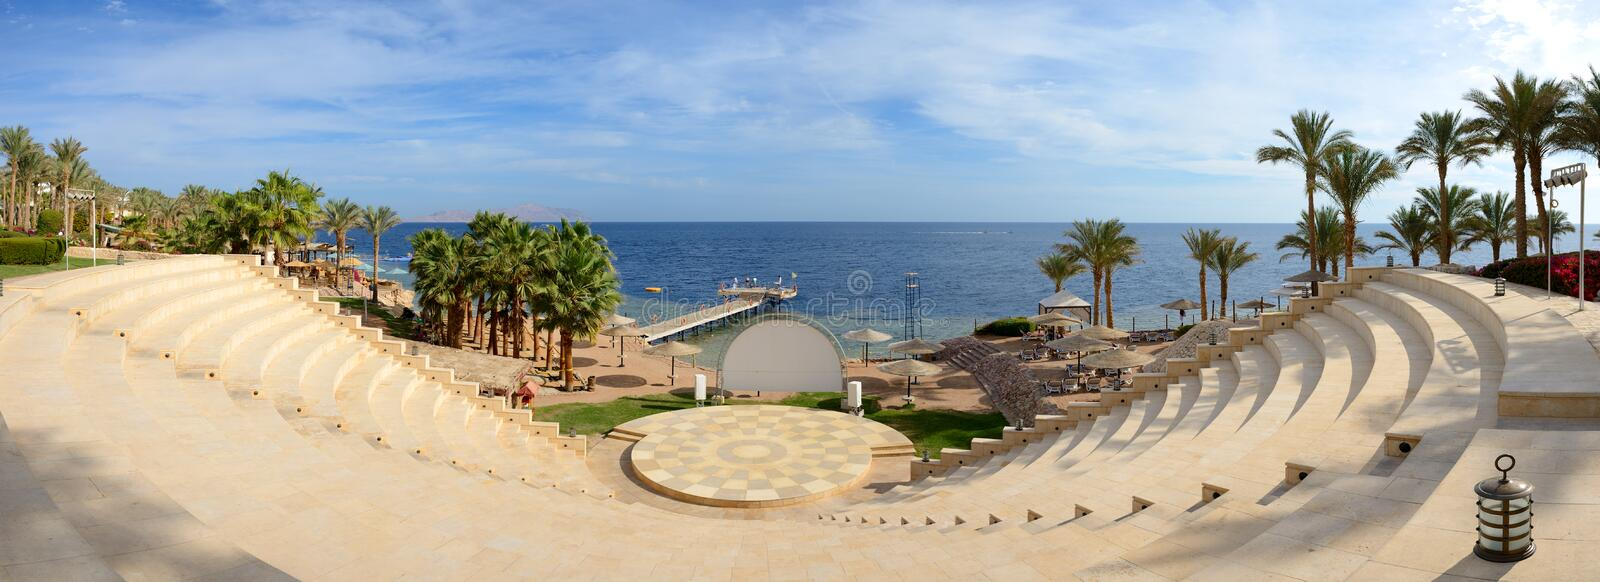 Download Panorama Of The Beach And Amphitheatre At Luxury Hotel Stock Image - Image: 30767929